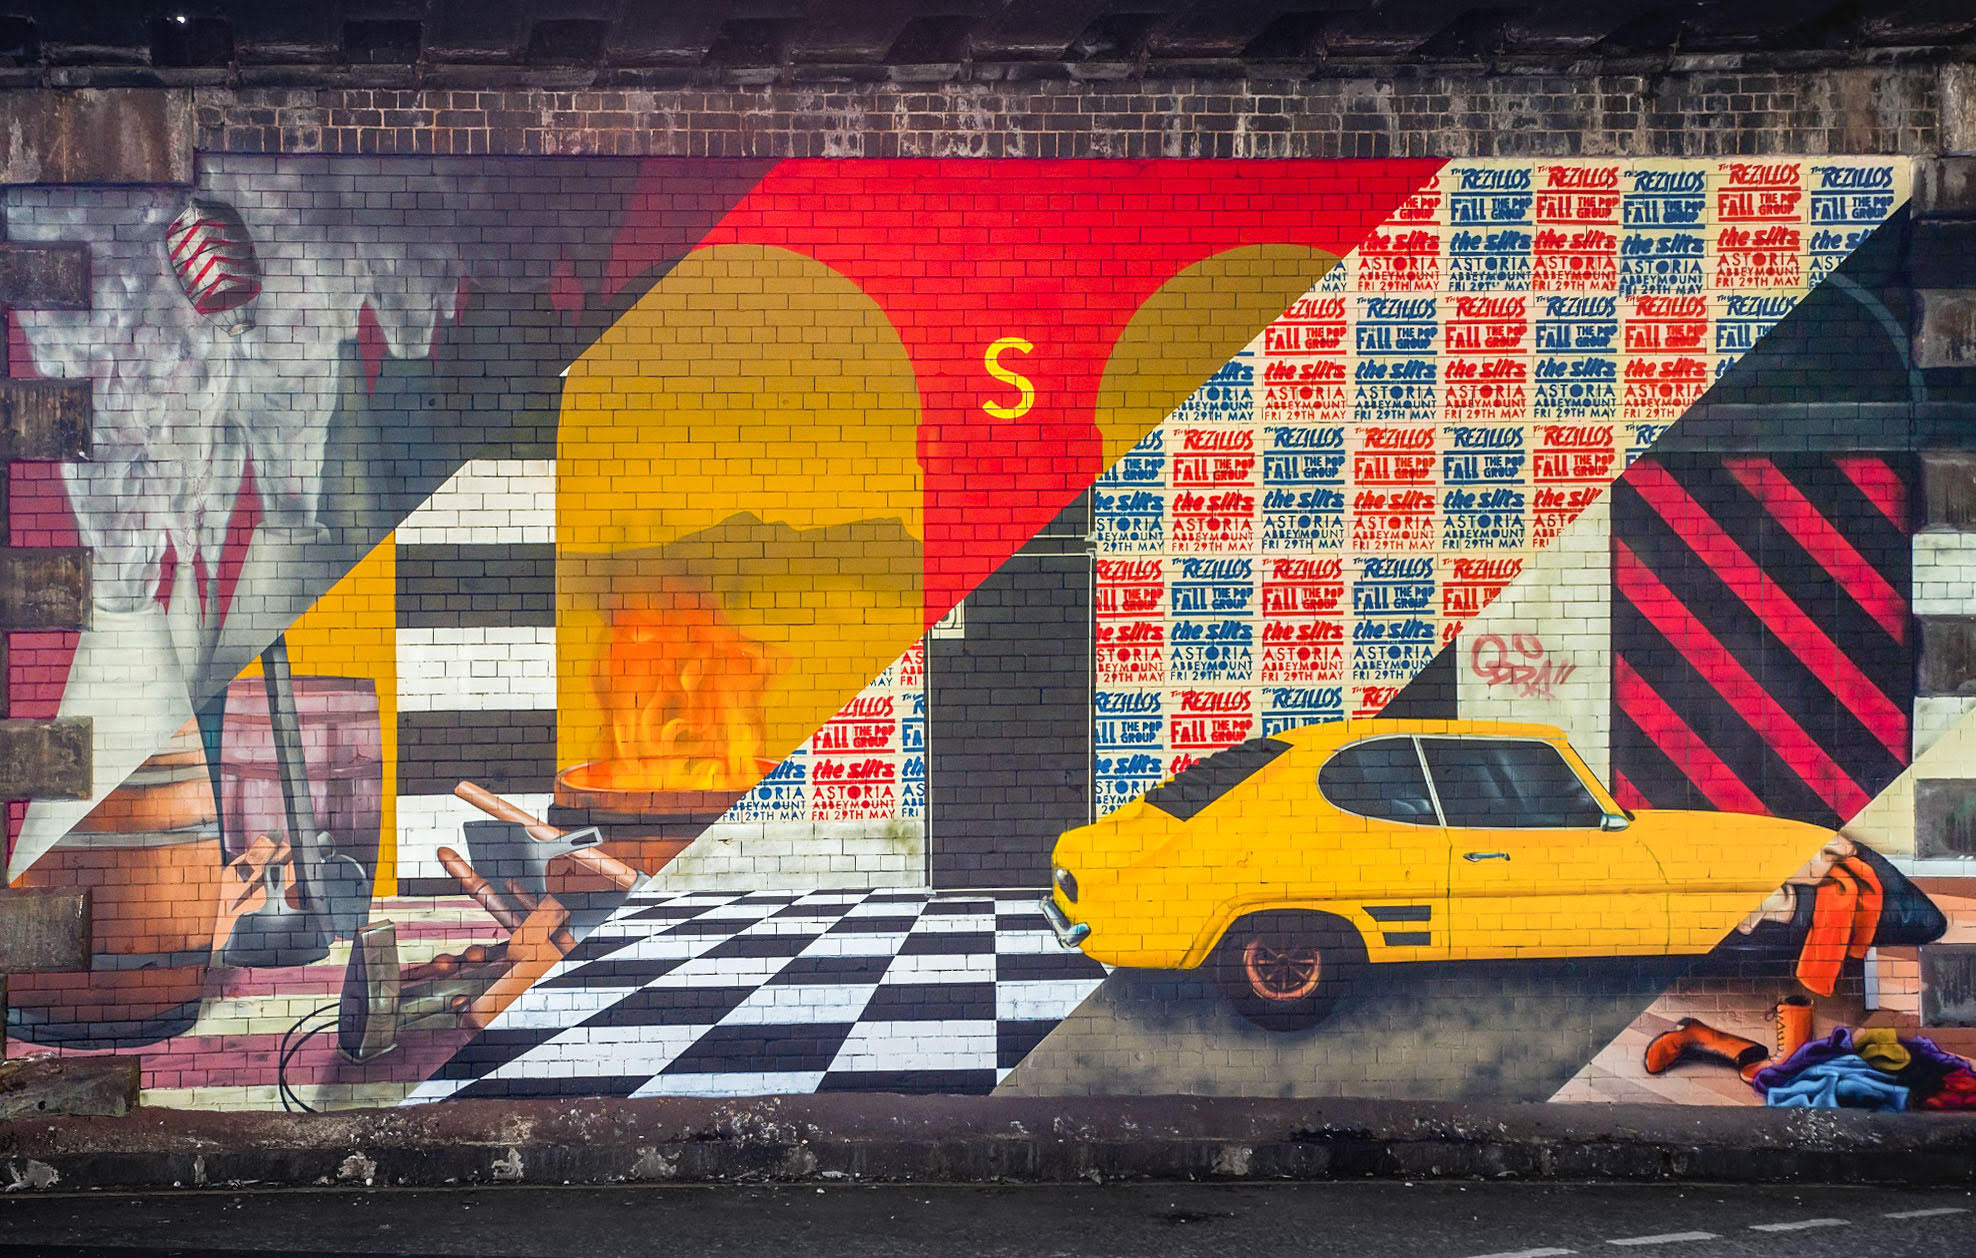 This bold mural is colourful and shows a yellow car